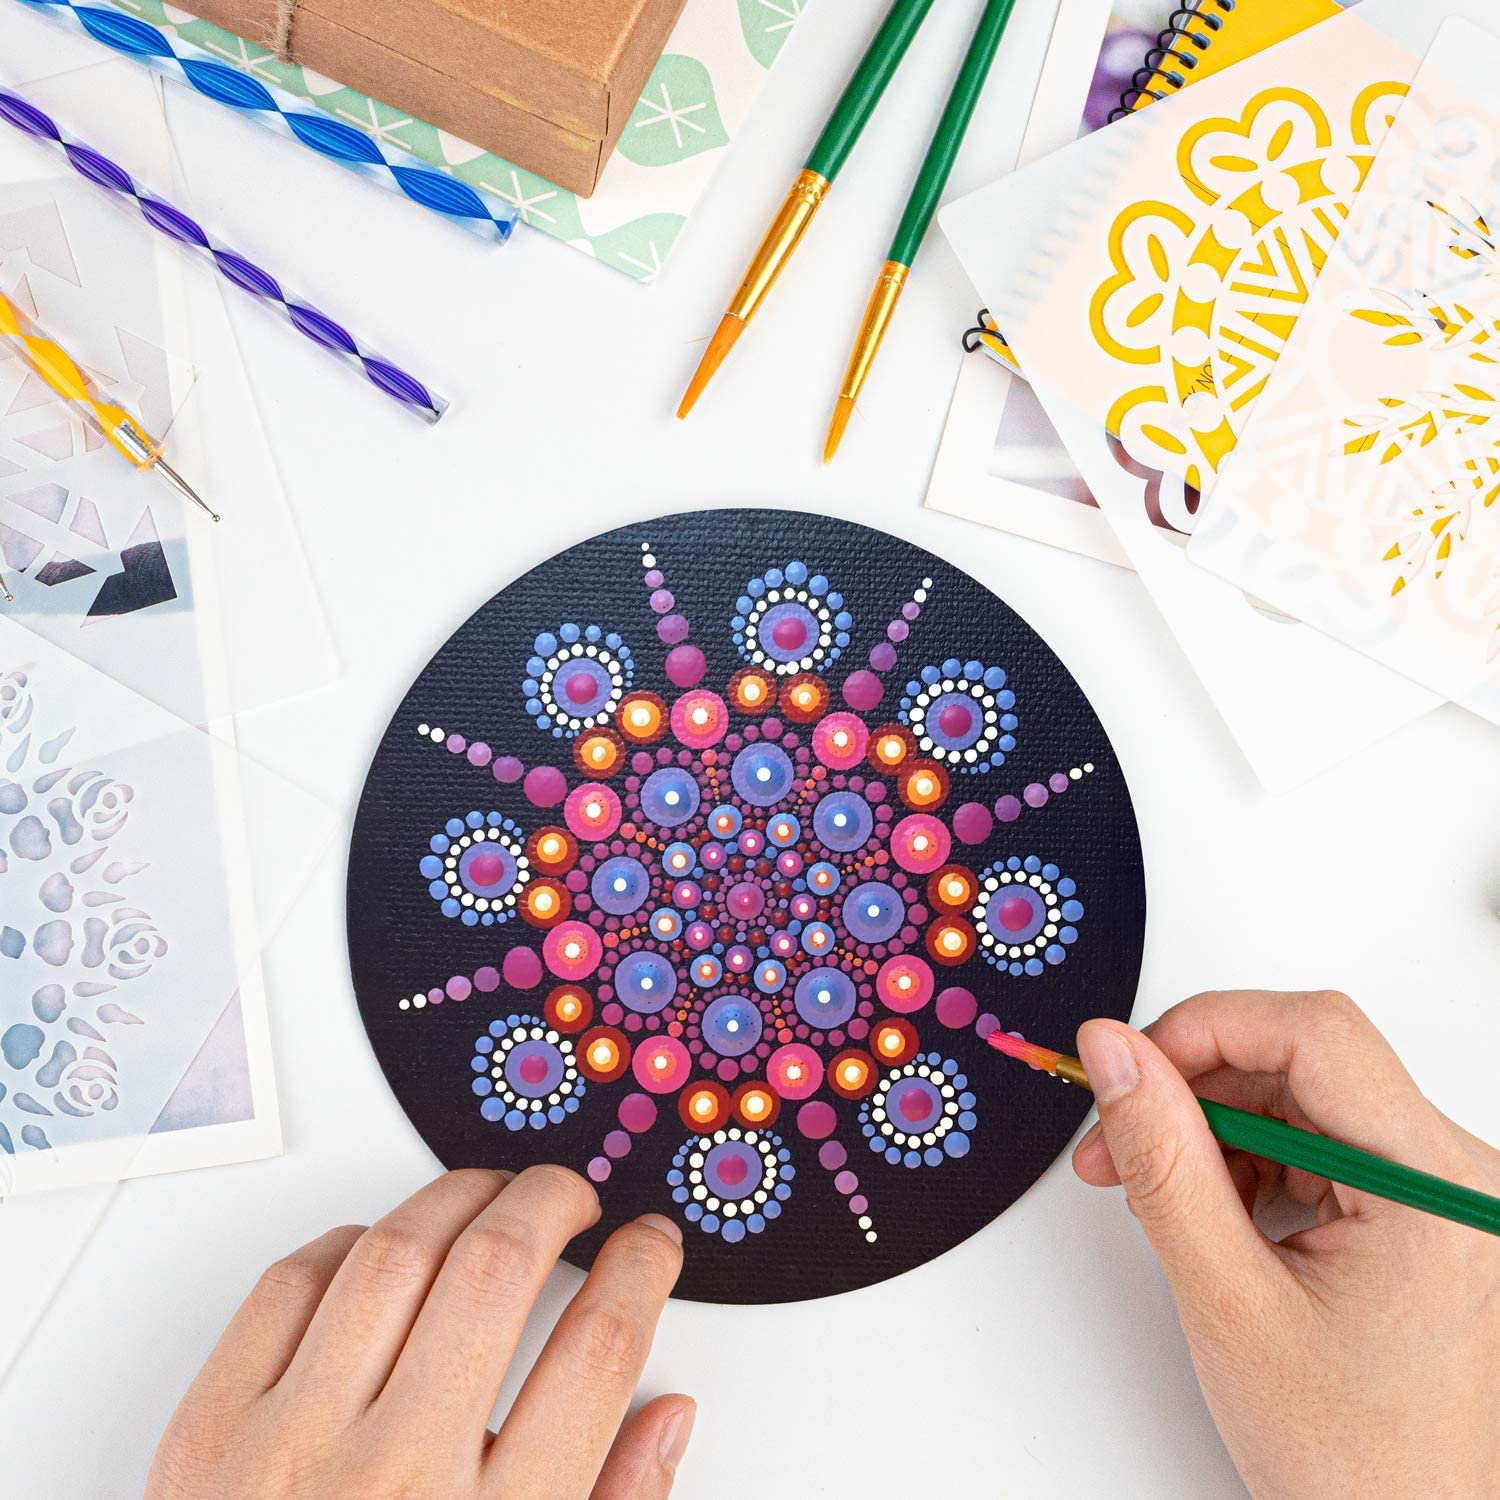 Painting Rocks VIBIRIT 50PCS Mandala Dotting Tools Complete Mandala Dotting Tools Set with Mandala Stencil//Dotting Tools//Brushes//Paint Tray//Mini Easel for Clay Pottery Craft Art Drawing Coloring